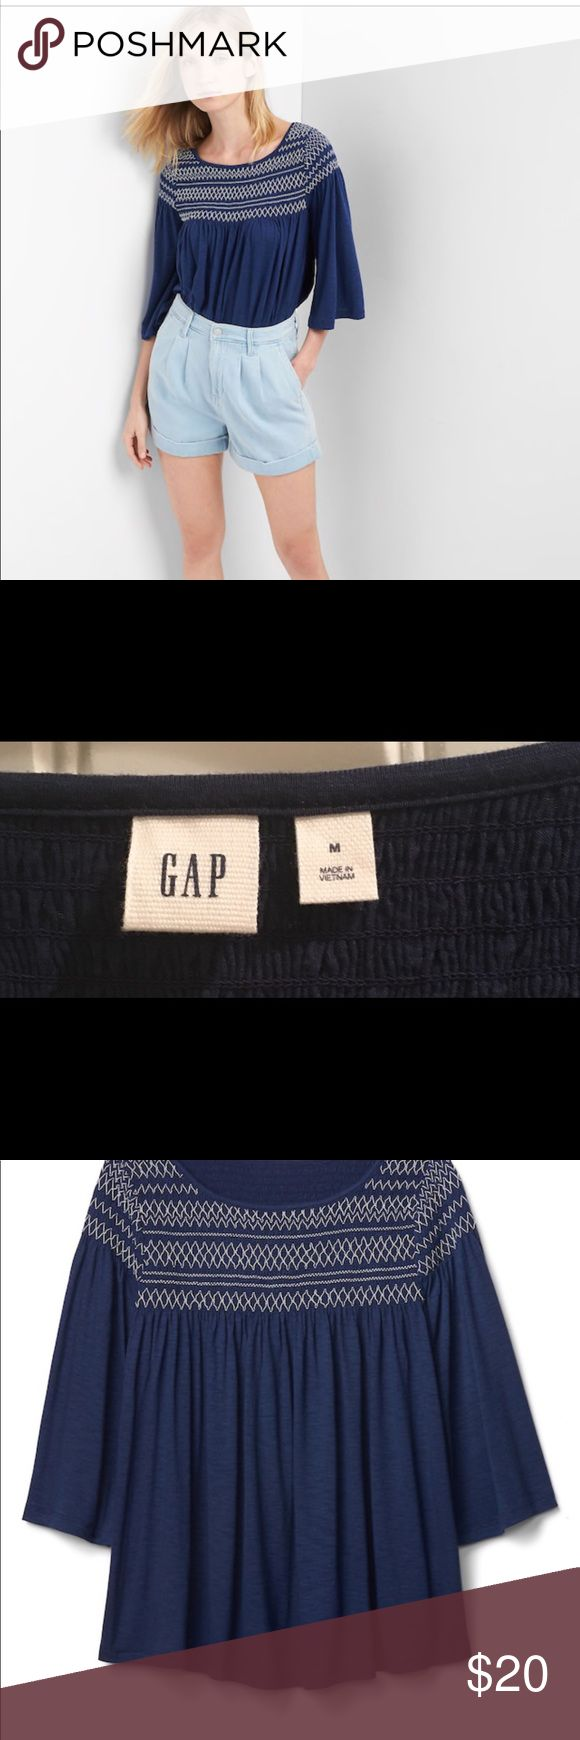 GAP size M shirt Cute smocked top from the Gap. Size M. Navy blue. Super cute and never worn! GAP Tops Tees - Long Sleeve